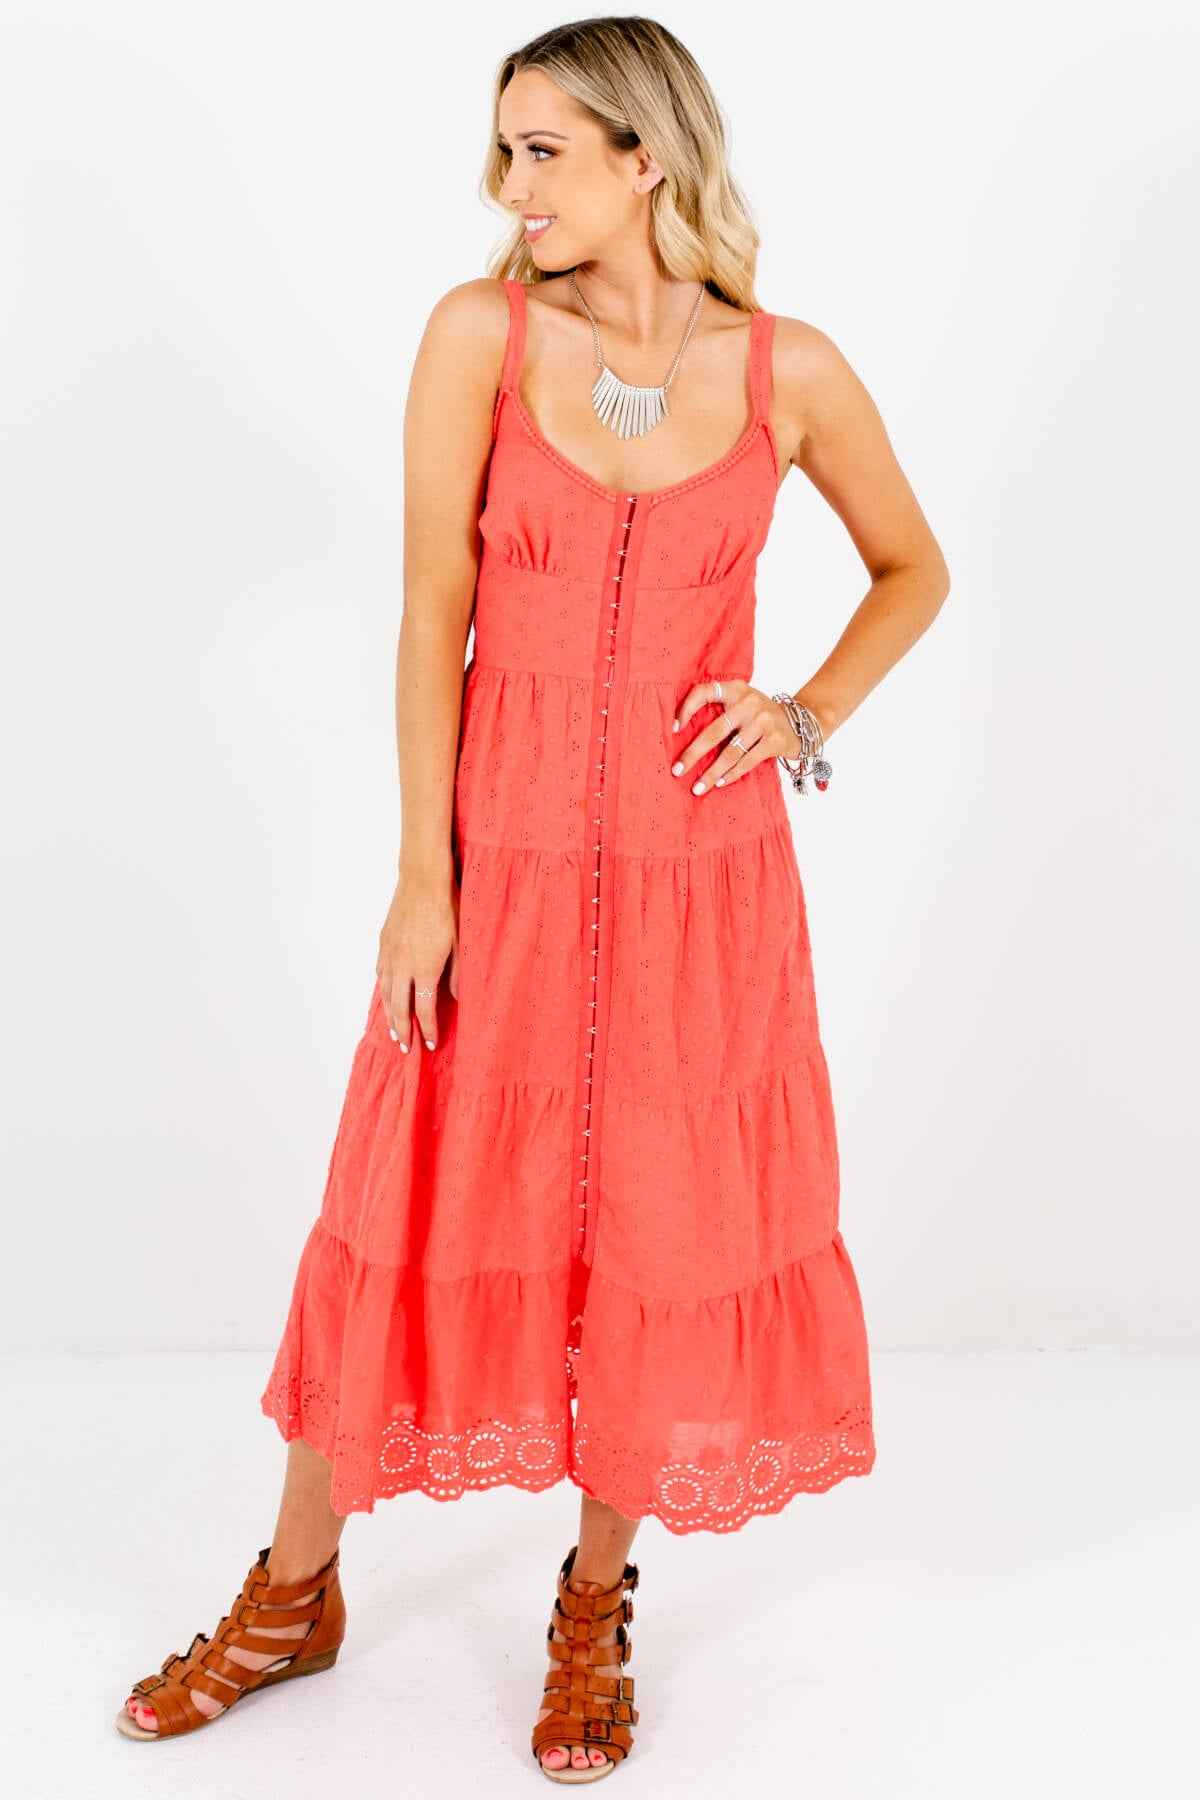 2b5a5d204 Coral Eyelet Embroidered Crochet Midi Dresses with Hook-and-Eye Front  Closure